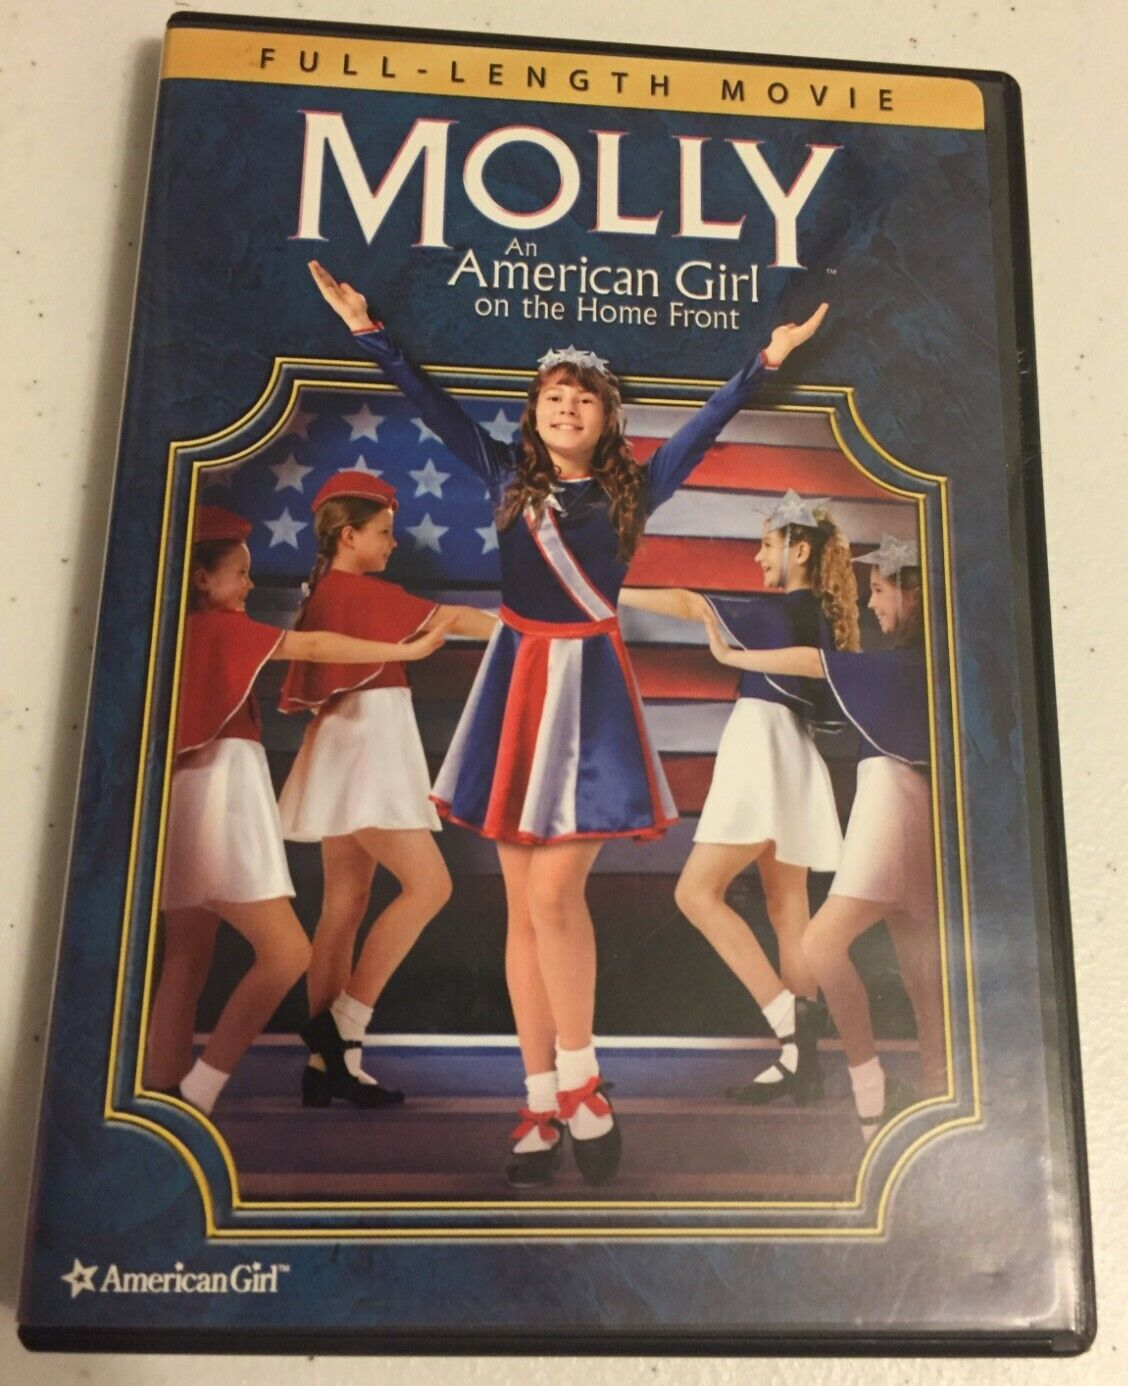 Molly An American Girl On The Home Front - DVD - LKE NEW - $2.99